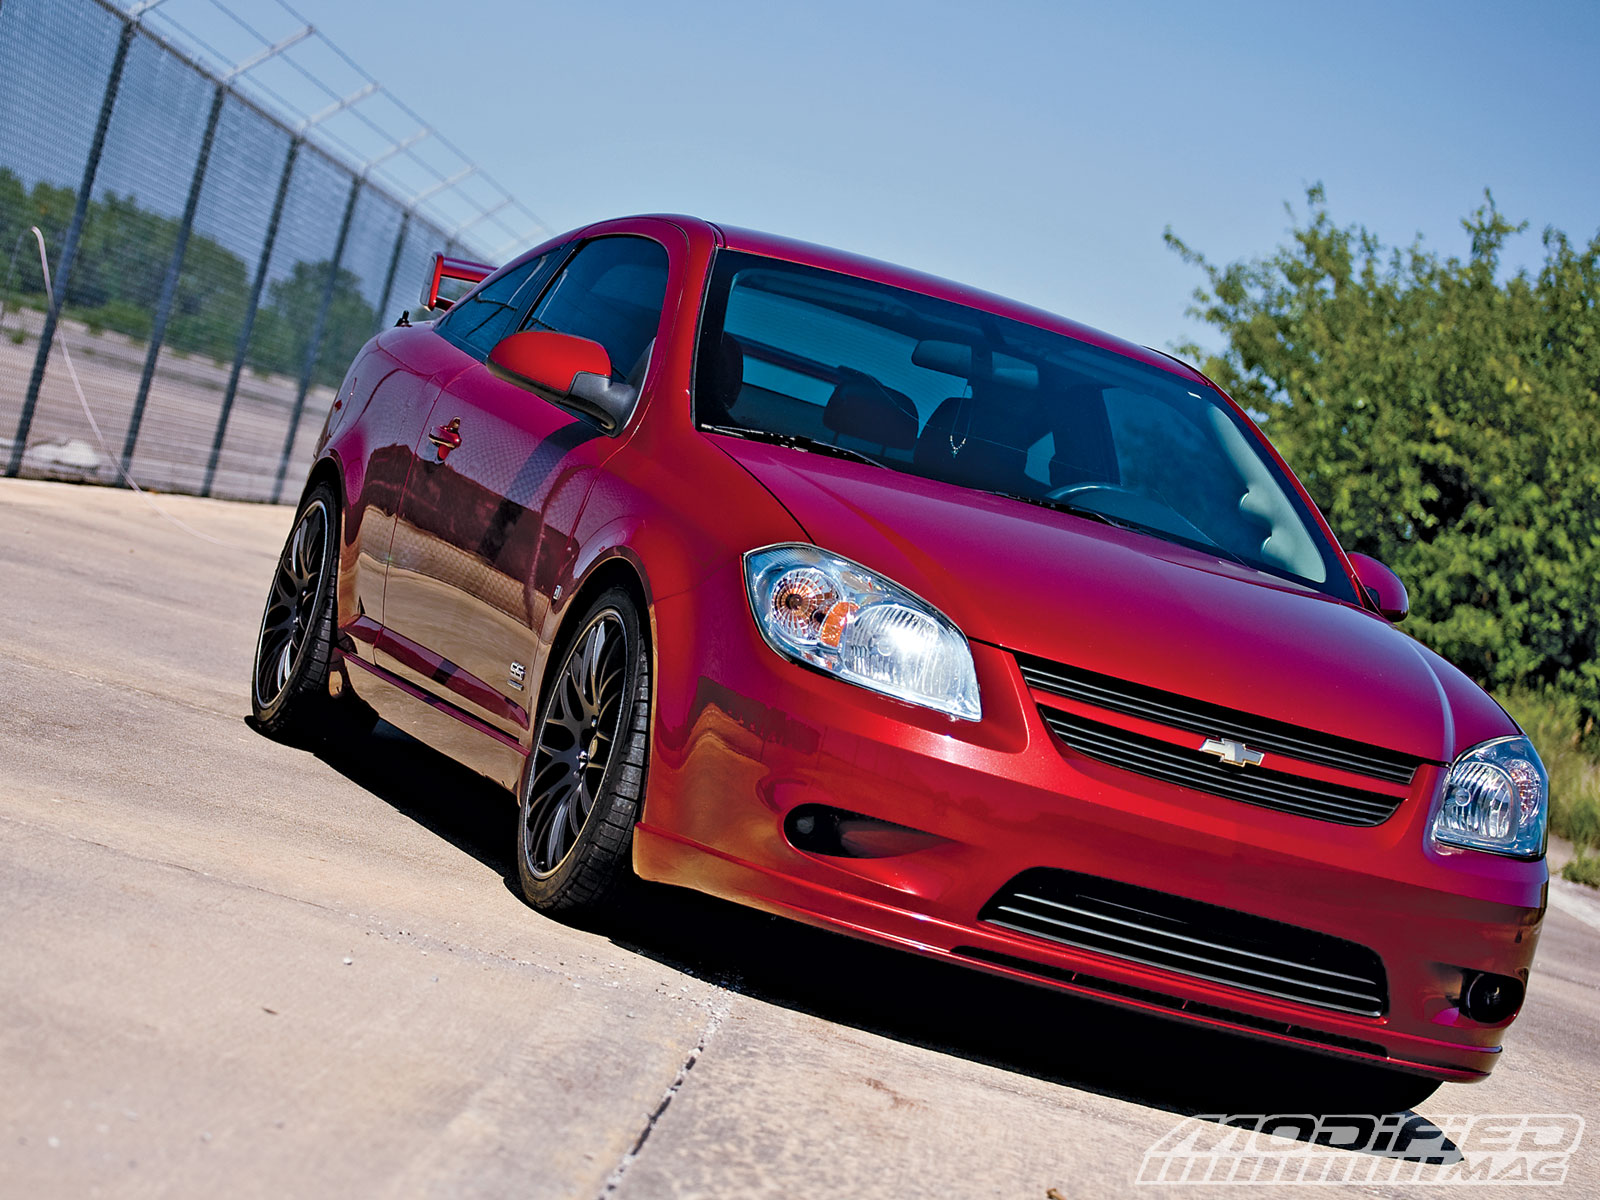 2007 Chevrolet Cobalt SS Supercharged - Modified Magazine